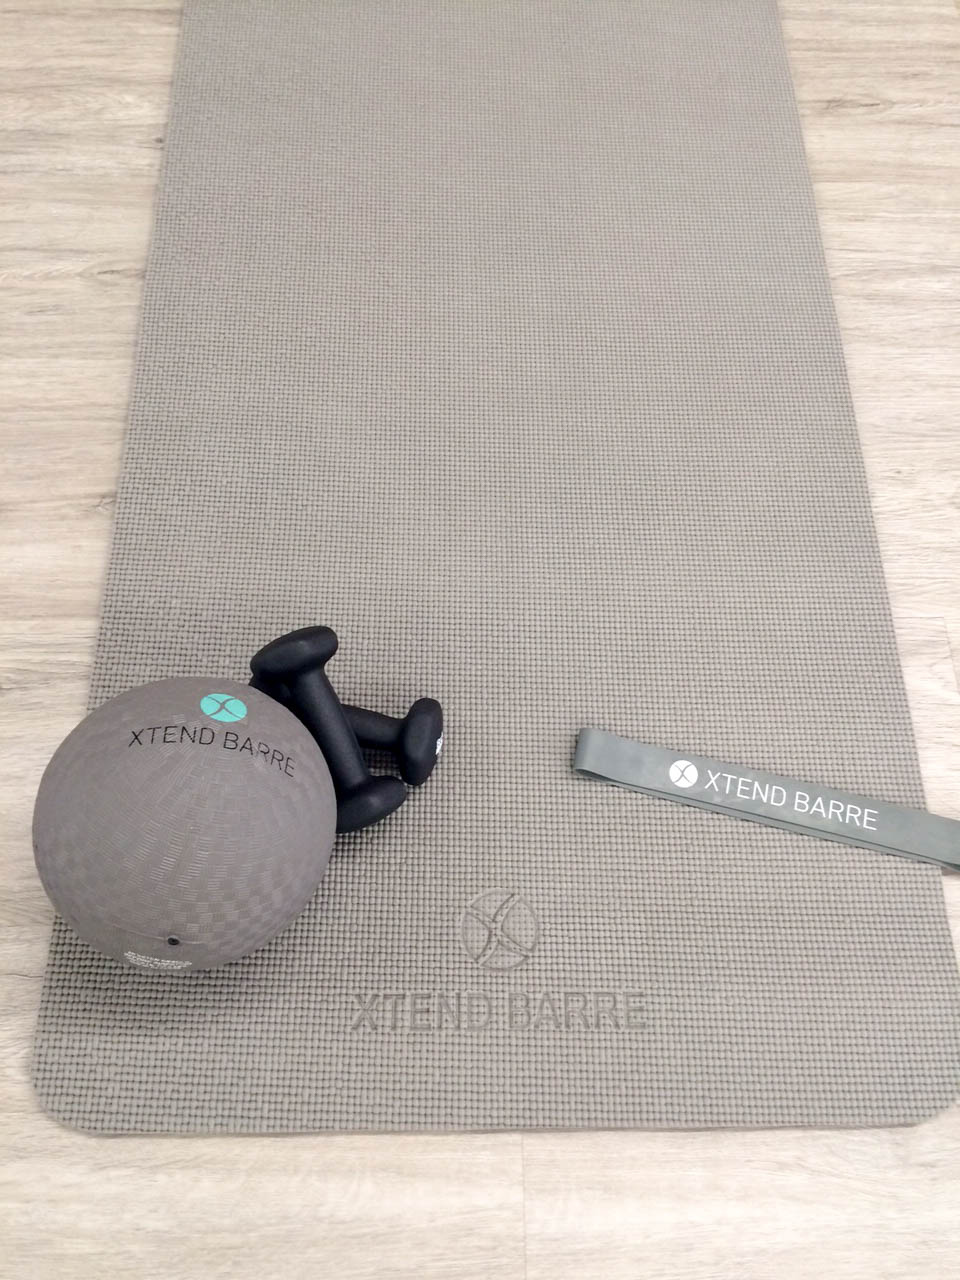 Boston Buzz: Xtend Barre Newbury Street